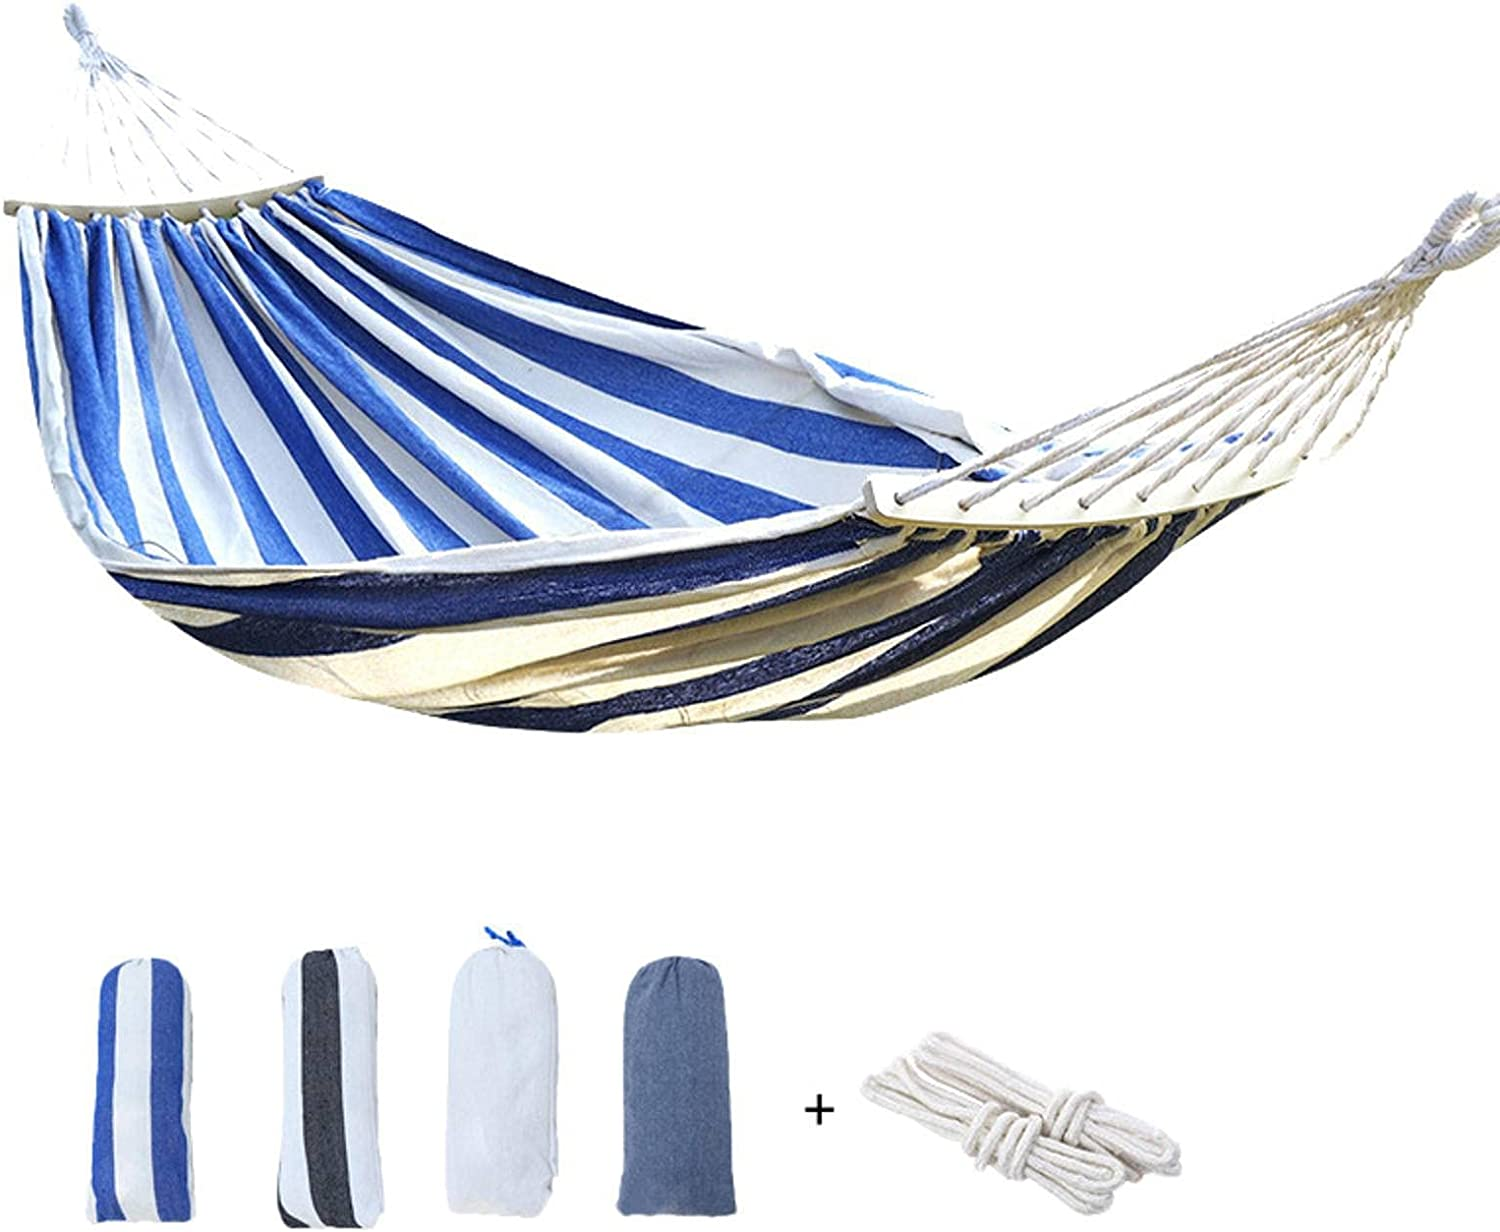 Outdoor Backpack Travel Purchase Survival Hunting Hammock Outlet SALE Bed Camping Ult